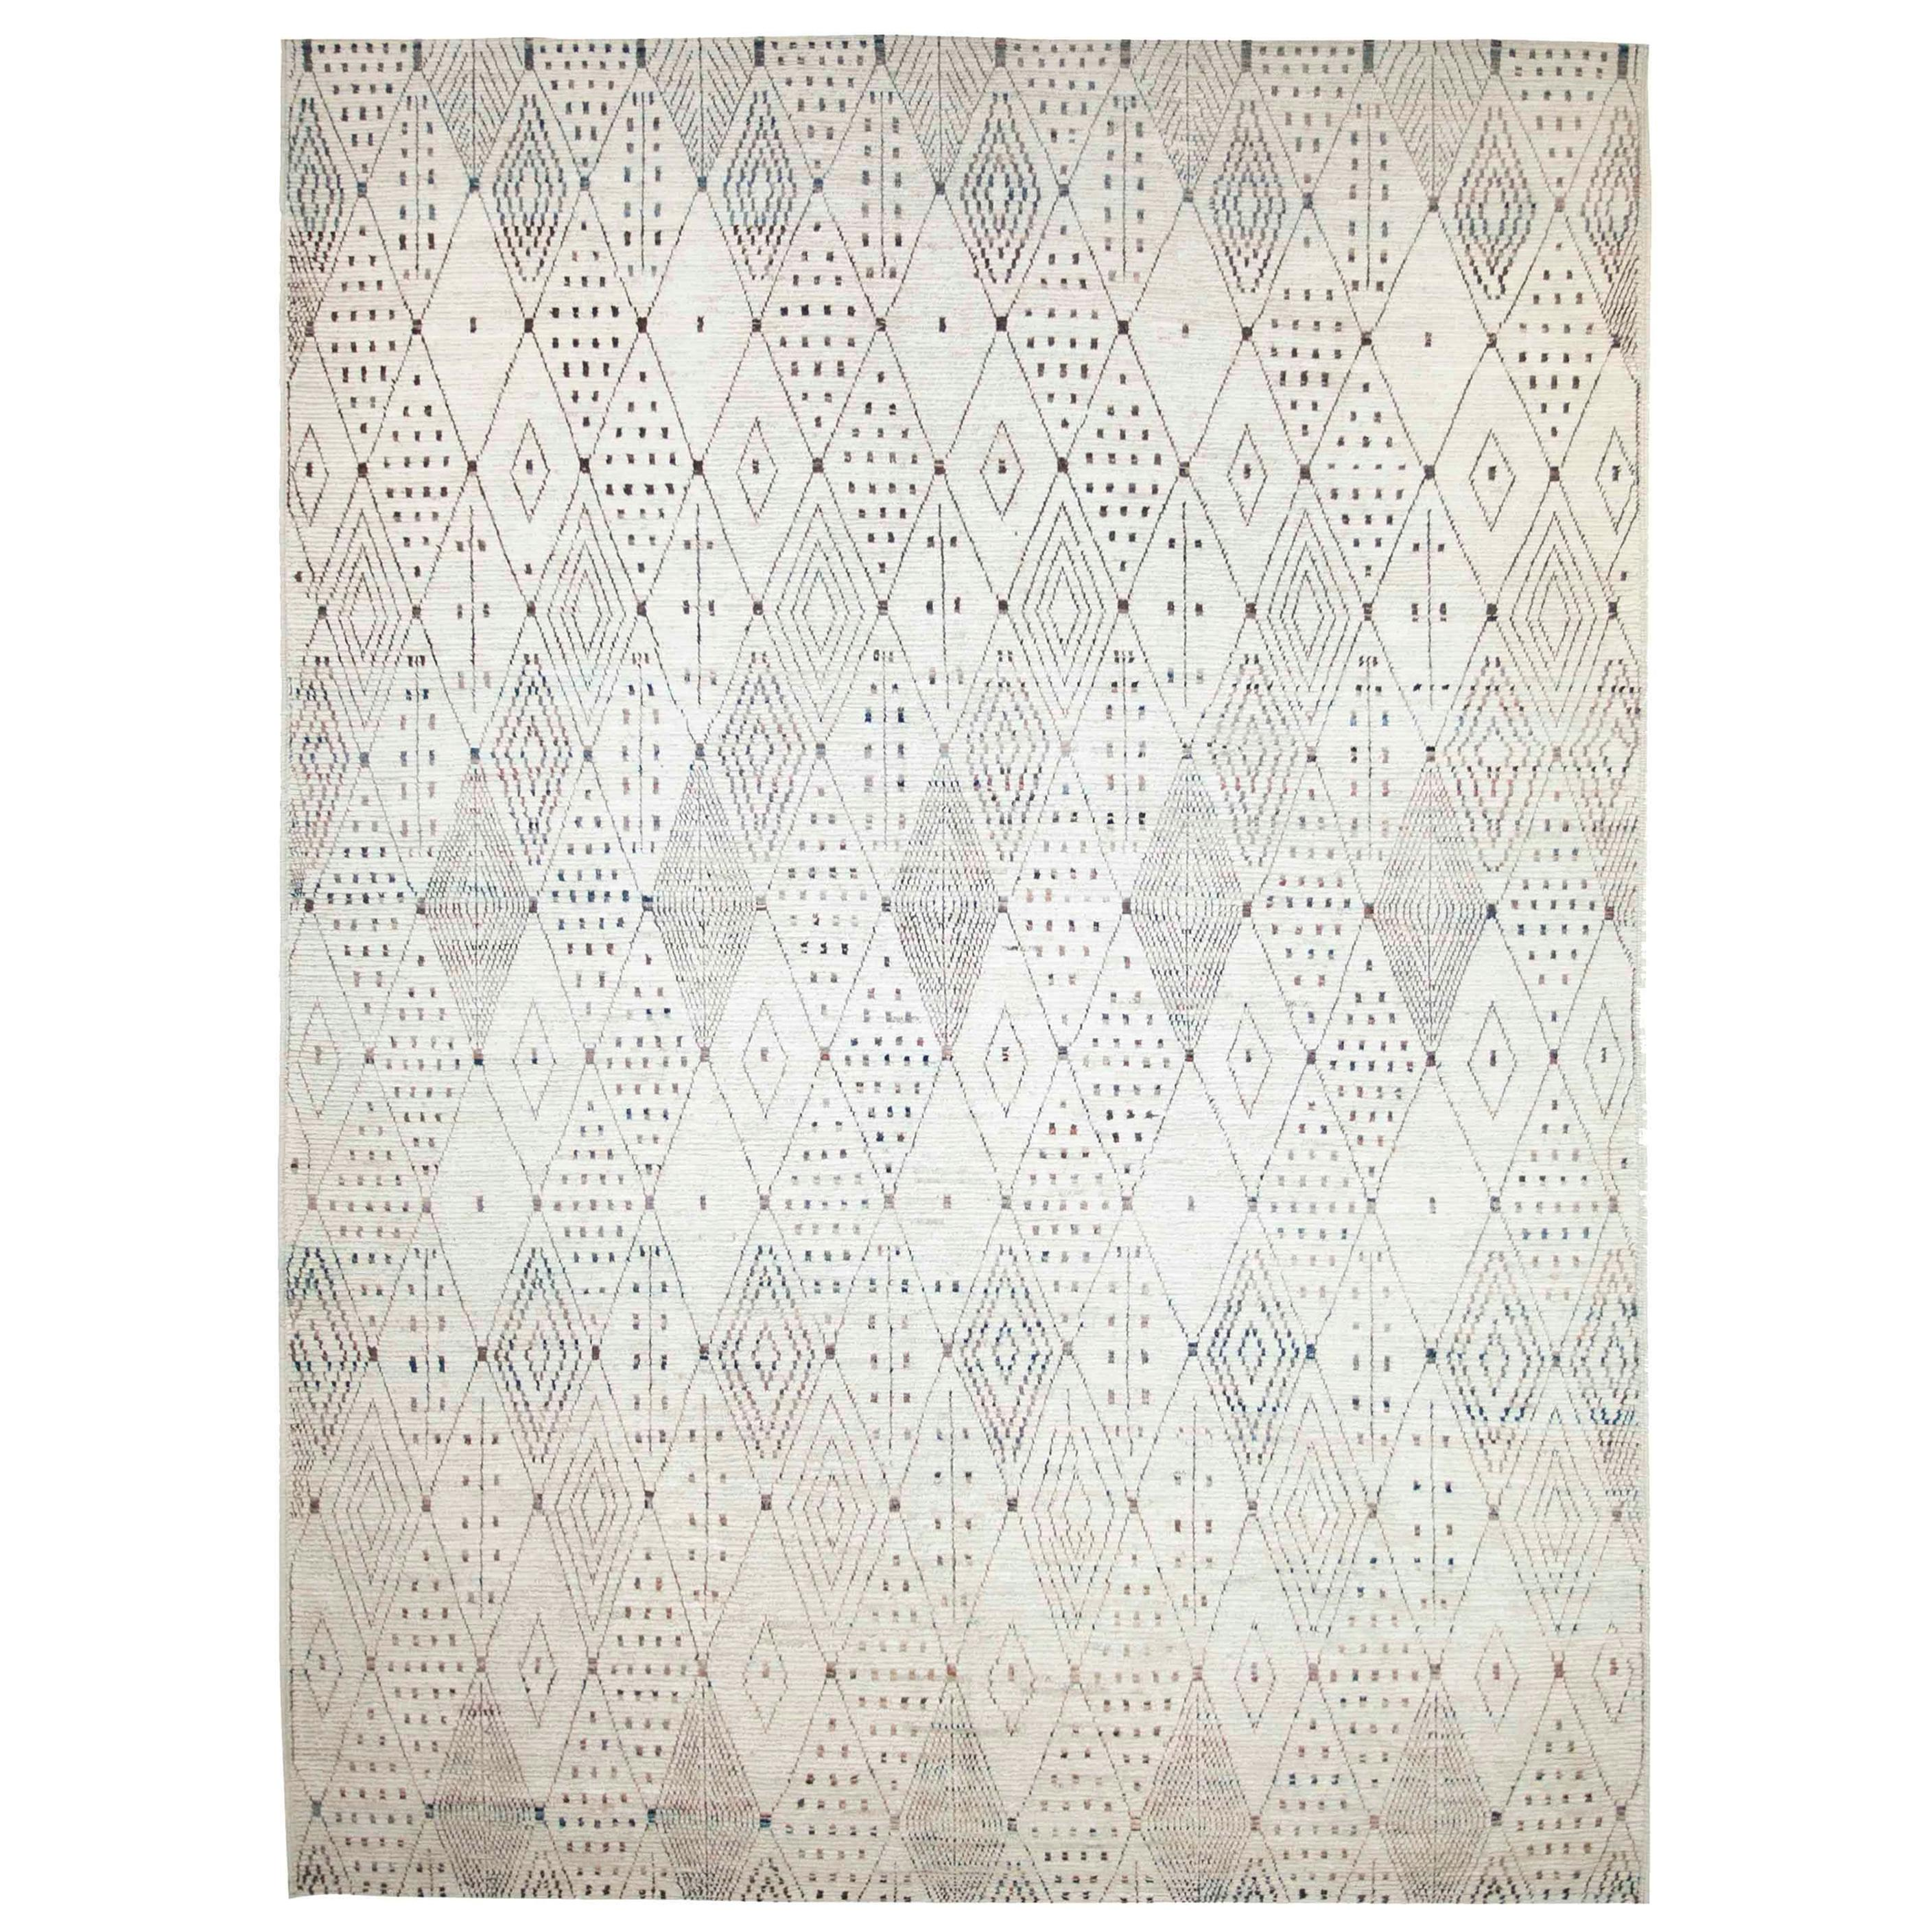 Modern Afghan Moroccan Style Rug with Black and Brown Tribal Patterns